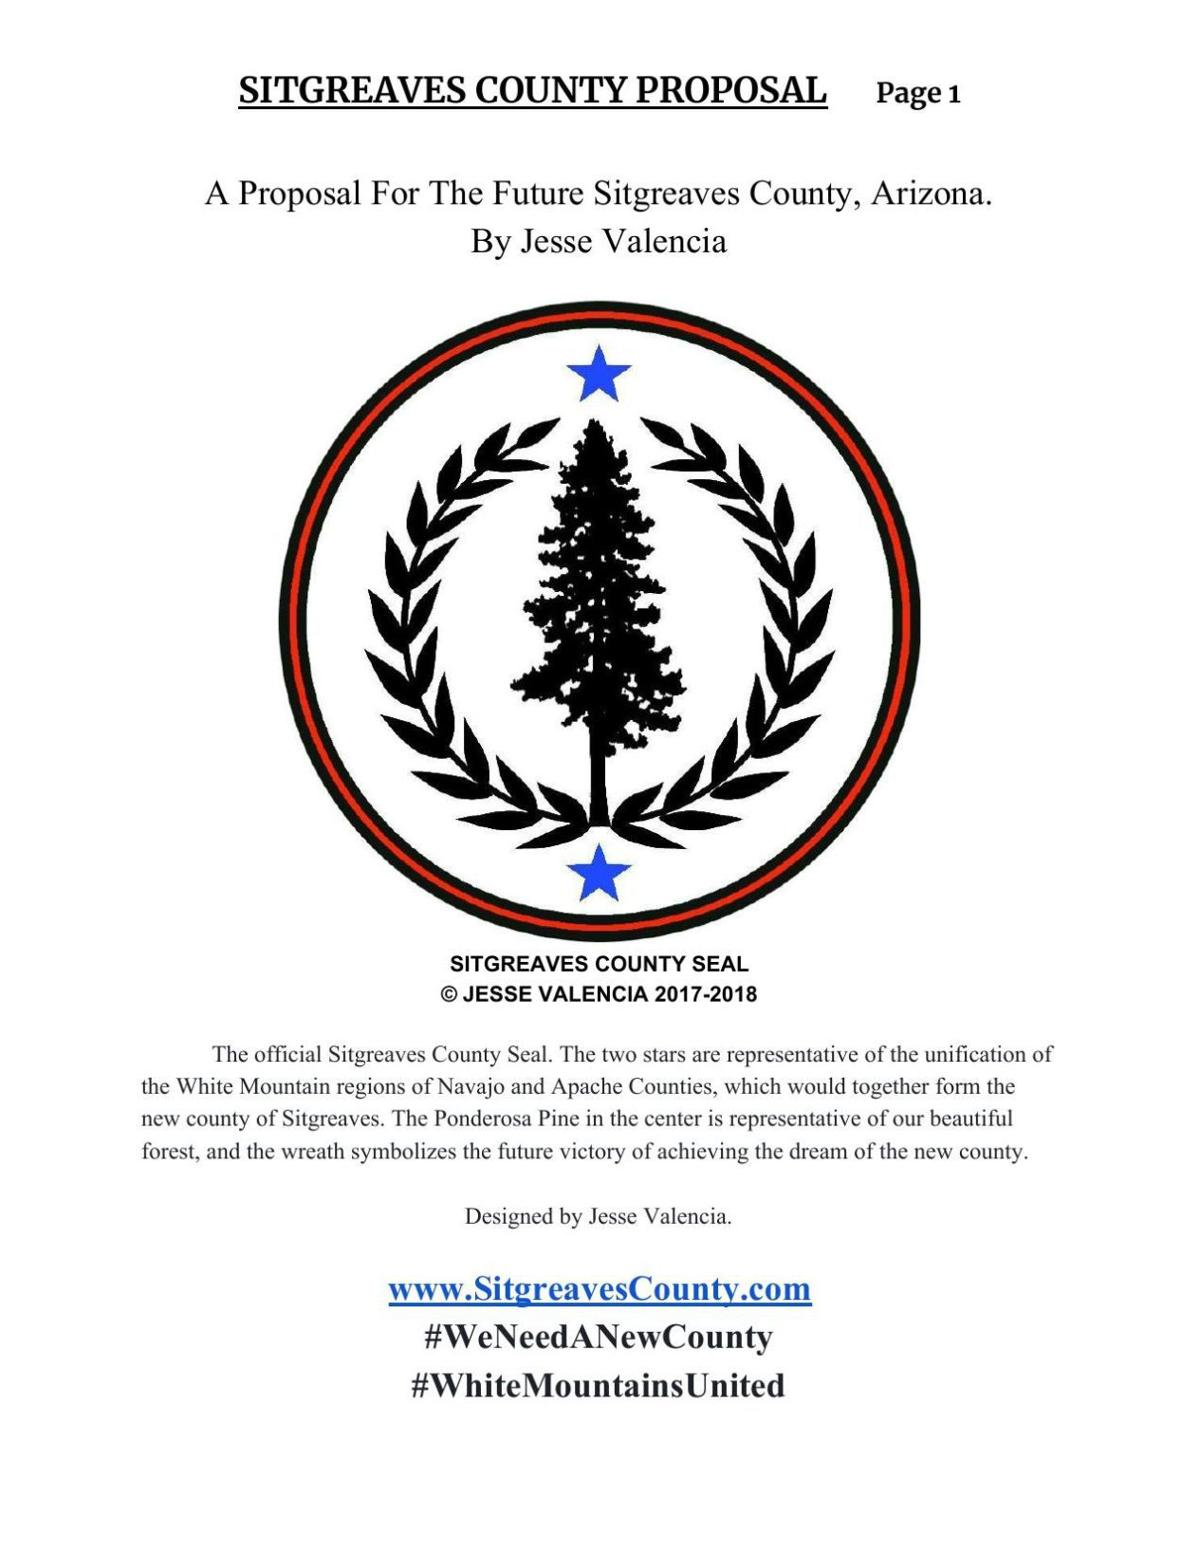 Sitgreaves County proposal